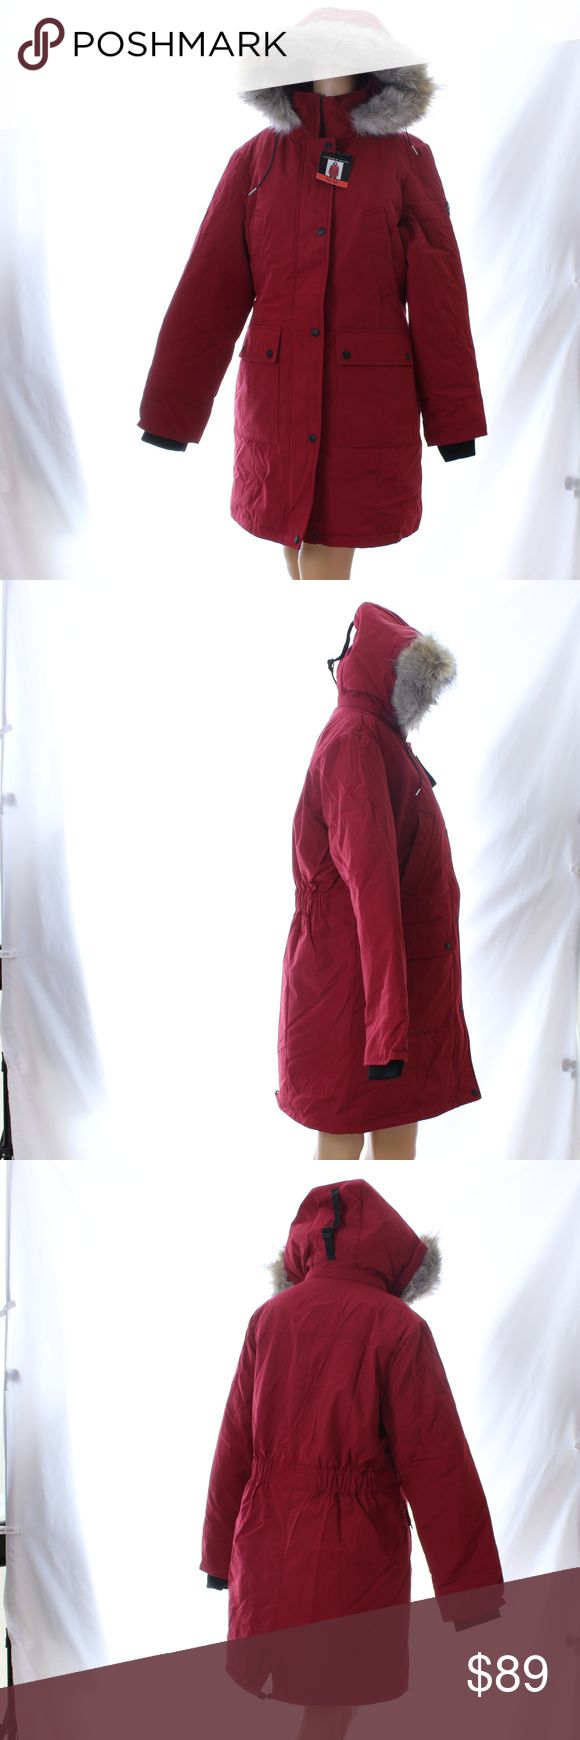 Andrew Marc Quilted Parka Coat Andrew Marc Quilted Parka Coat - Red  New with tag.   Detachable hood.  Fleece neck warmer.  Storm cuffs. Inner smart phone pocket.  Oversized inner pocket. Andrew Marc Jackets & Coats